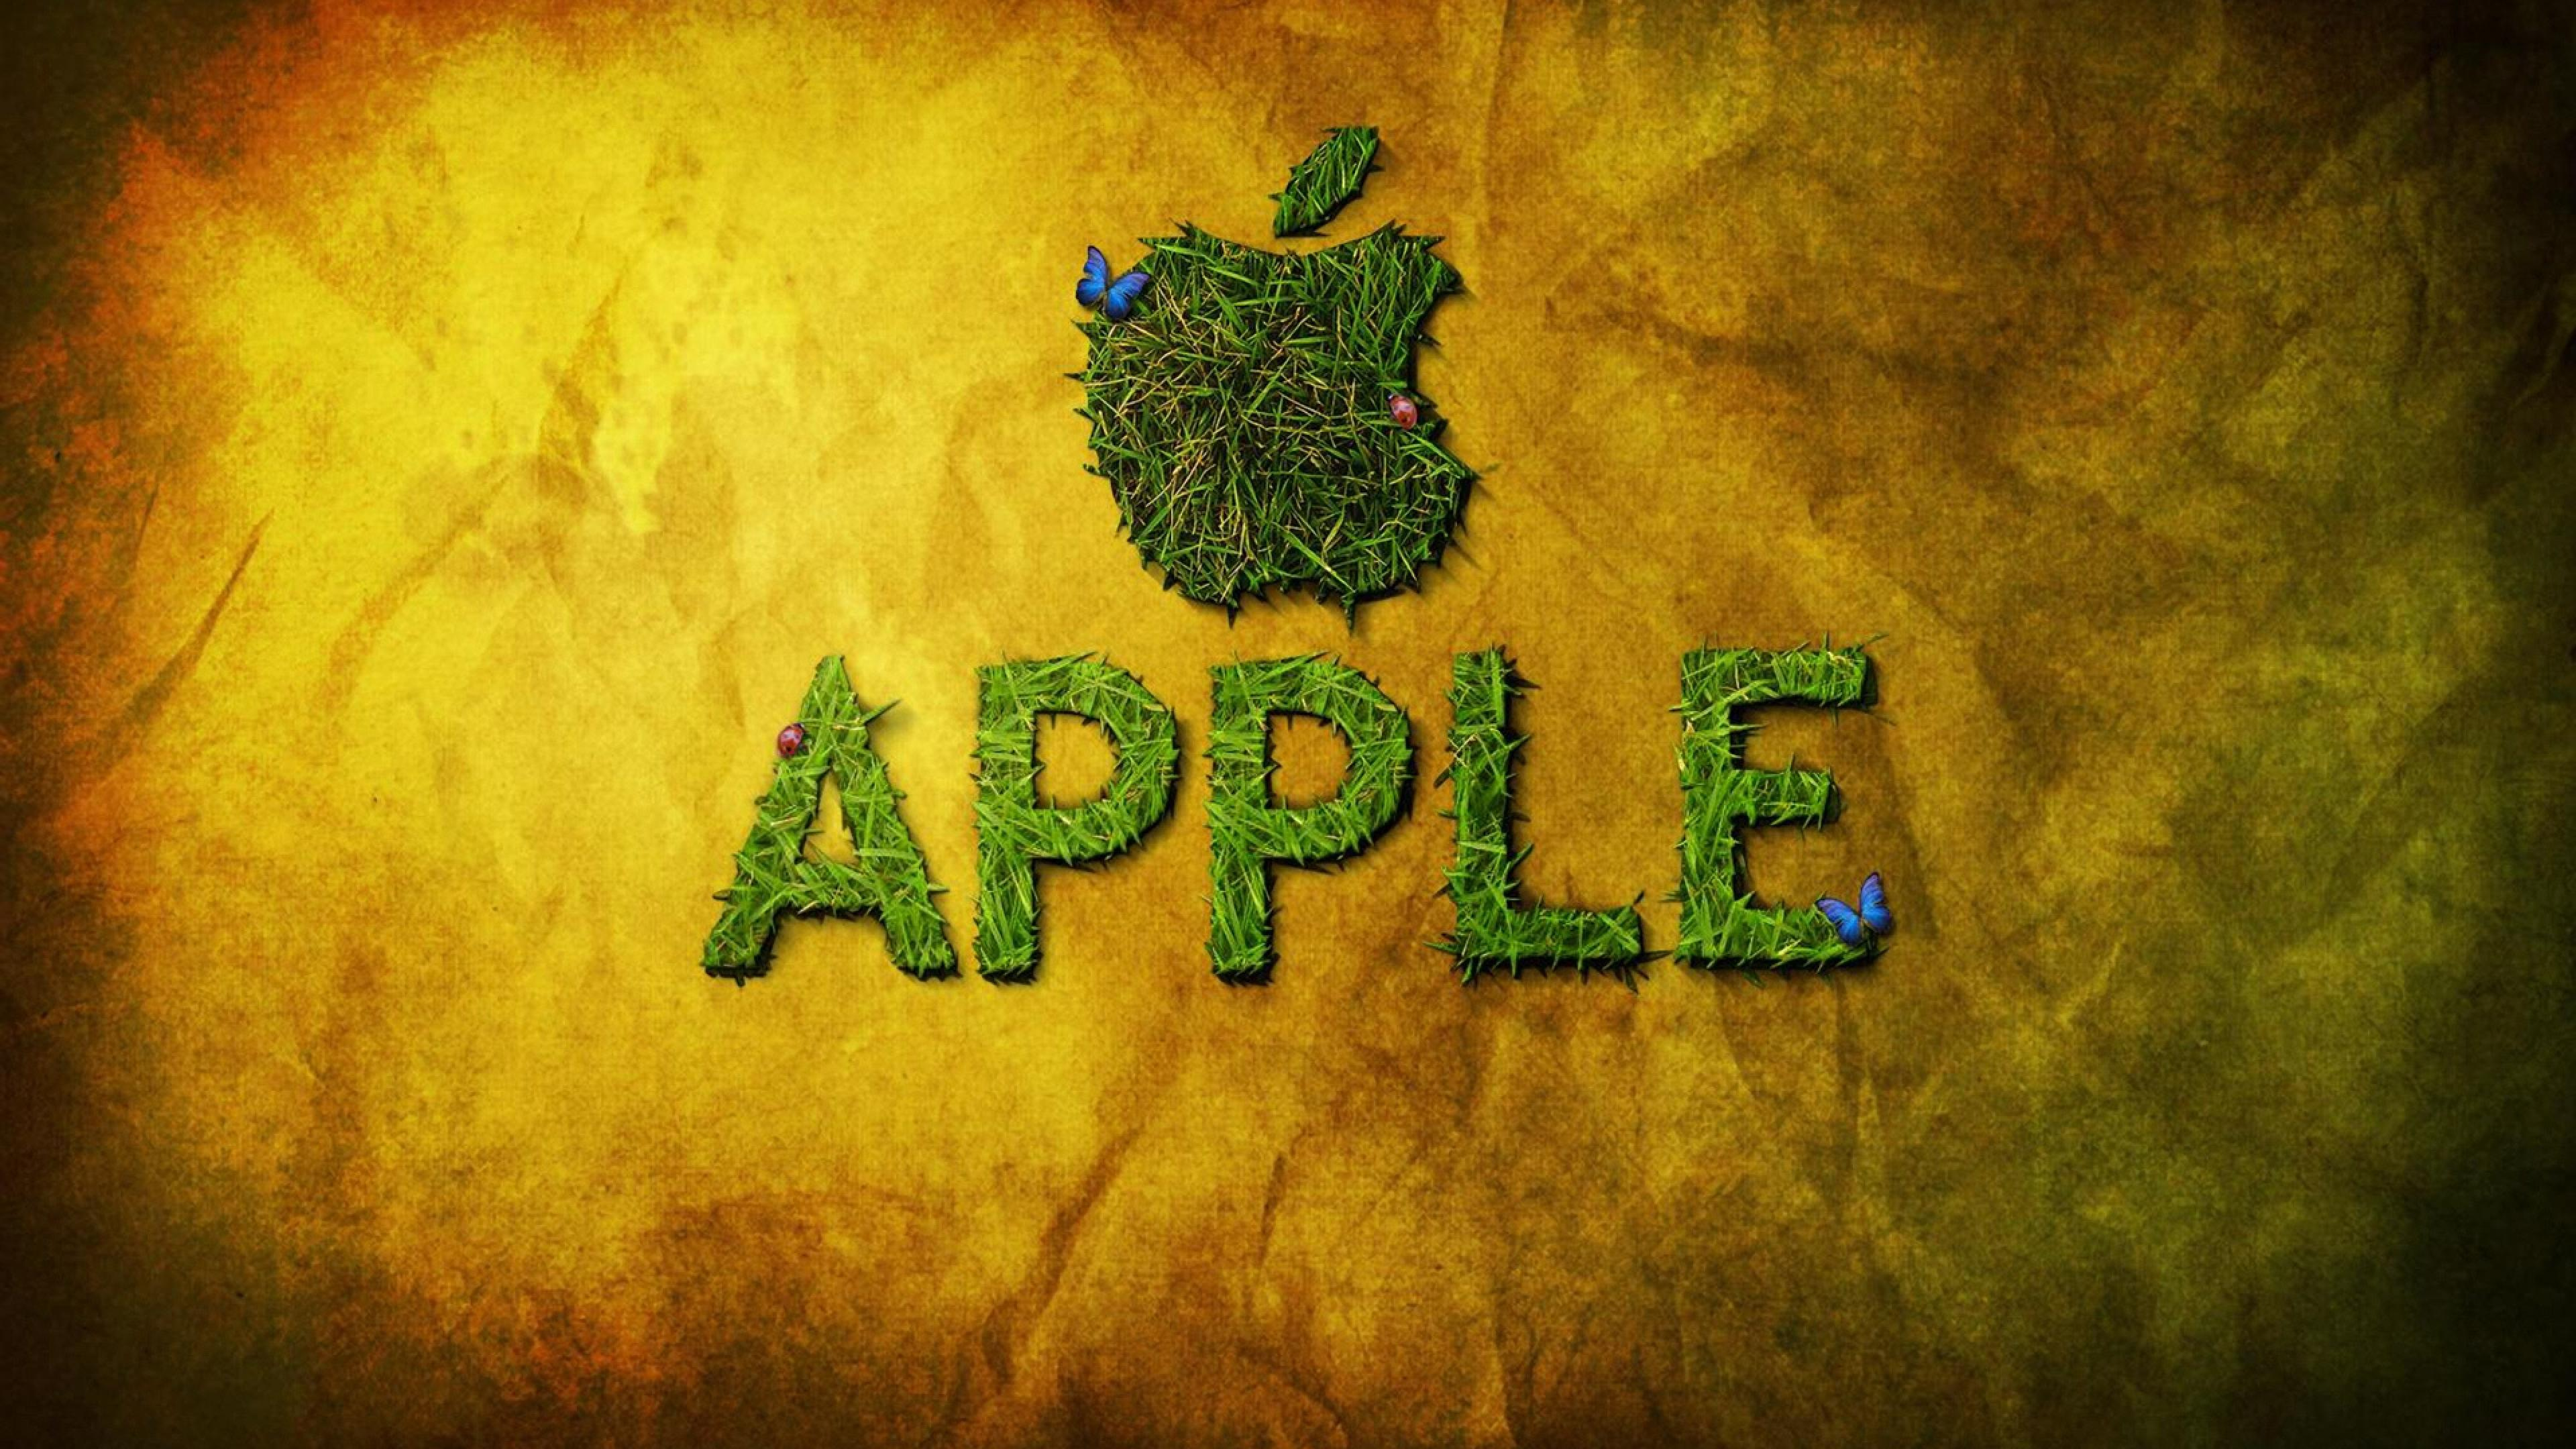 Apple Brand Mac Os Wallpaper Hd